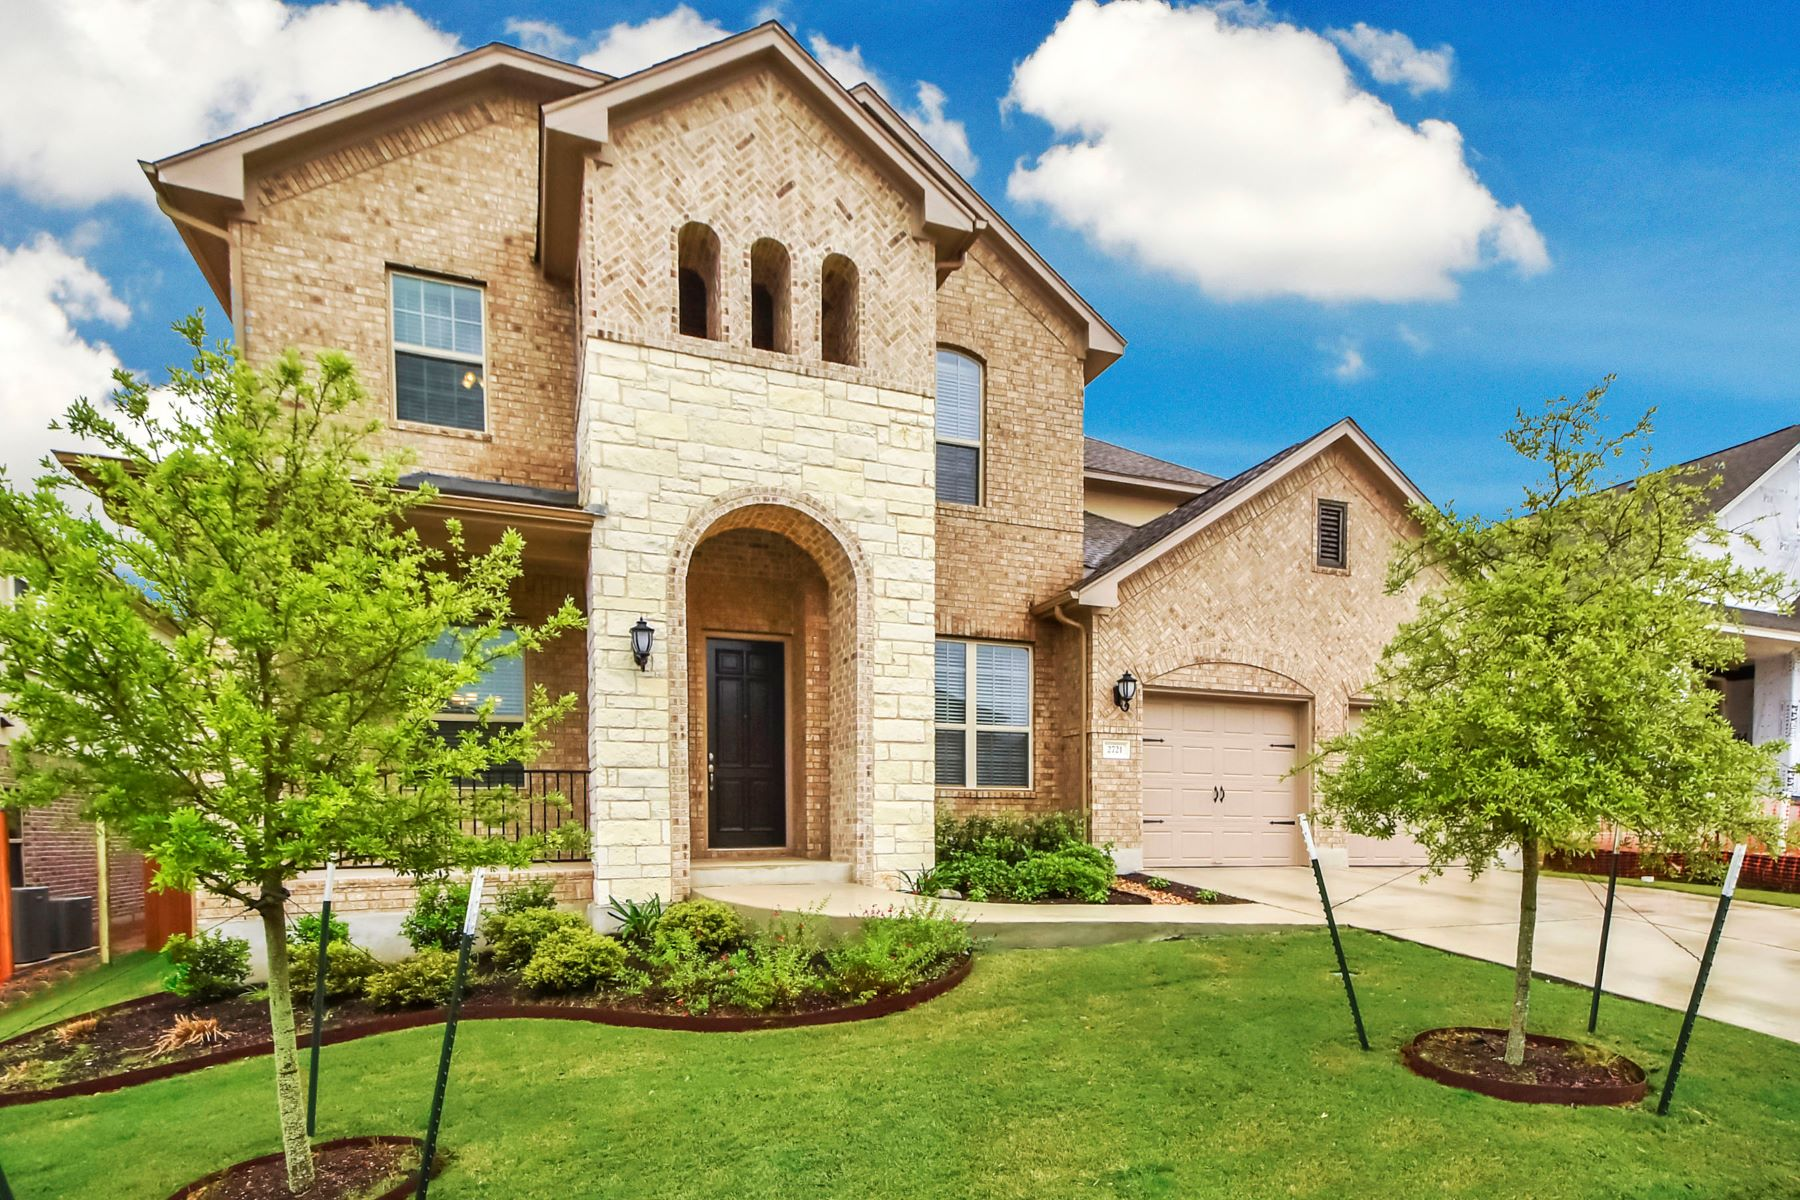 Casa Unifamiliar por un Venta en Better Than New Home with Many Upgrades 2721 Mazaro WY Round Rock, Texas 78665 Estados Unidos